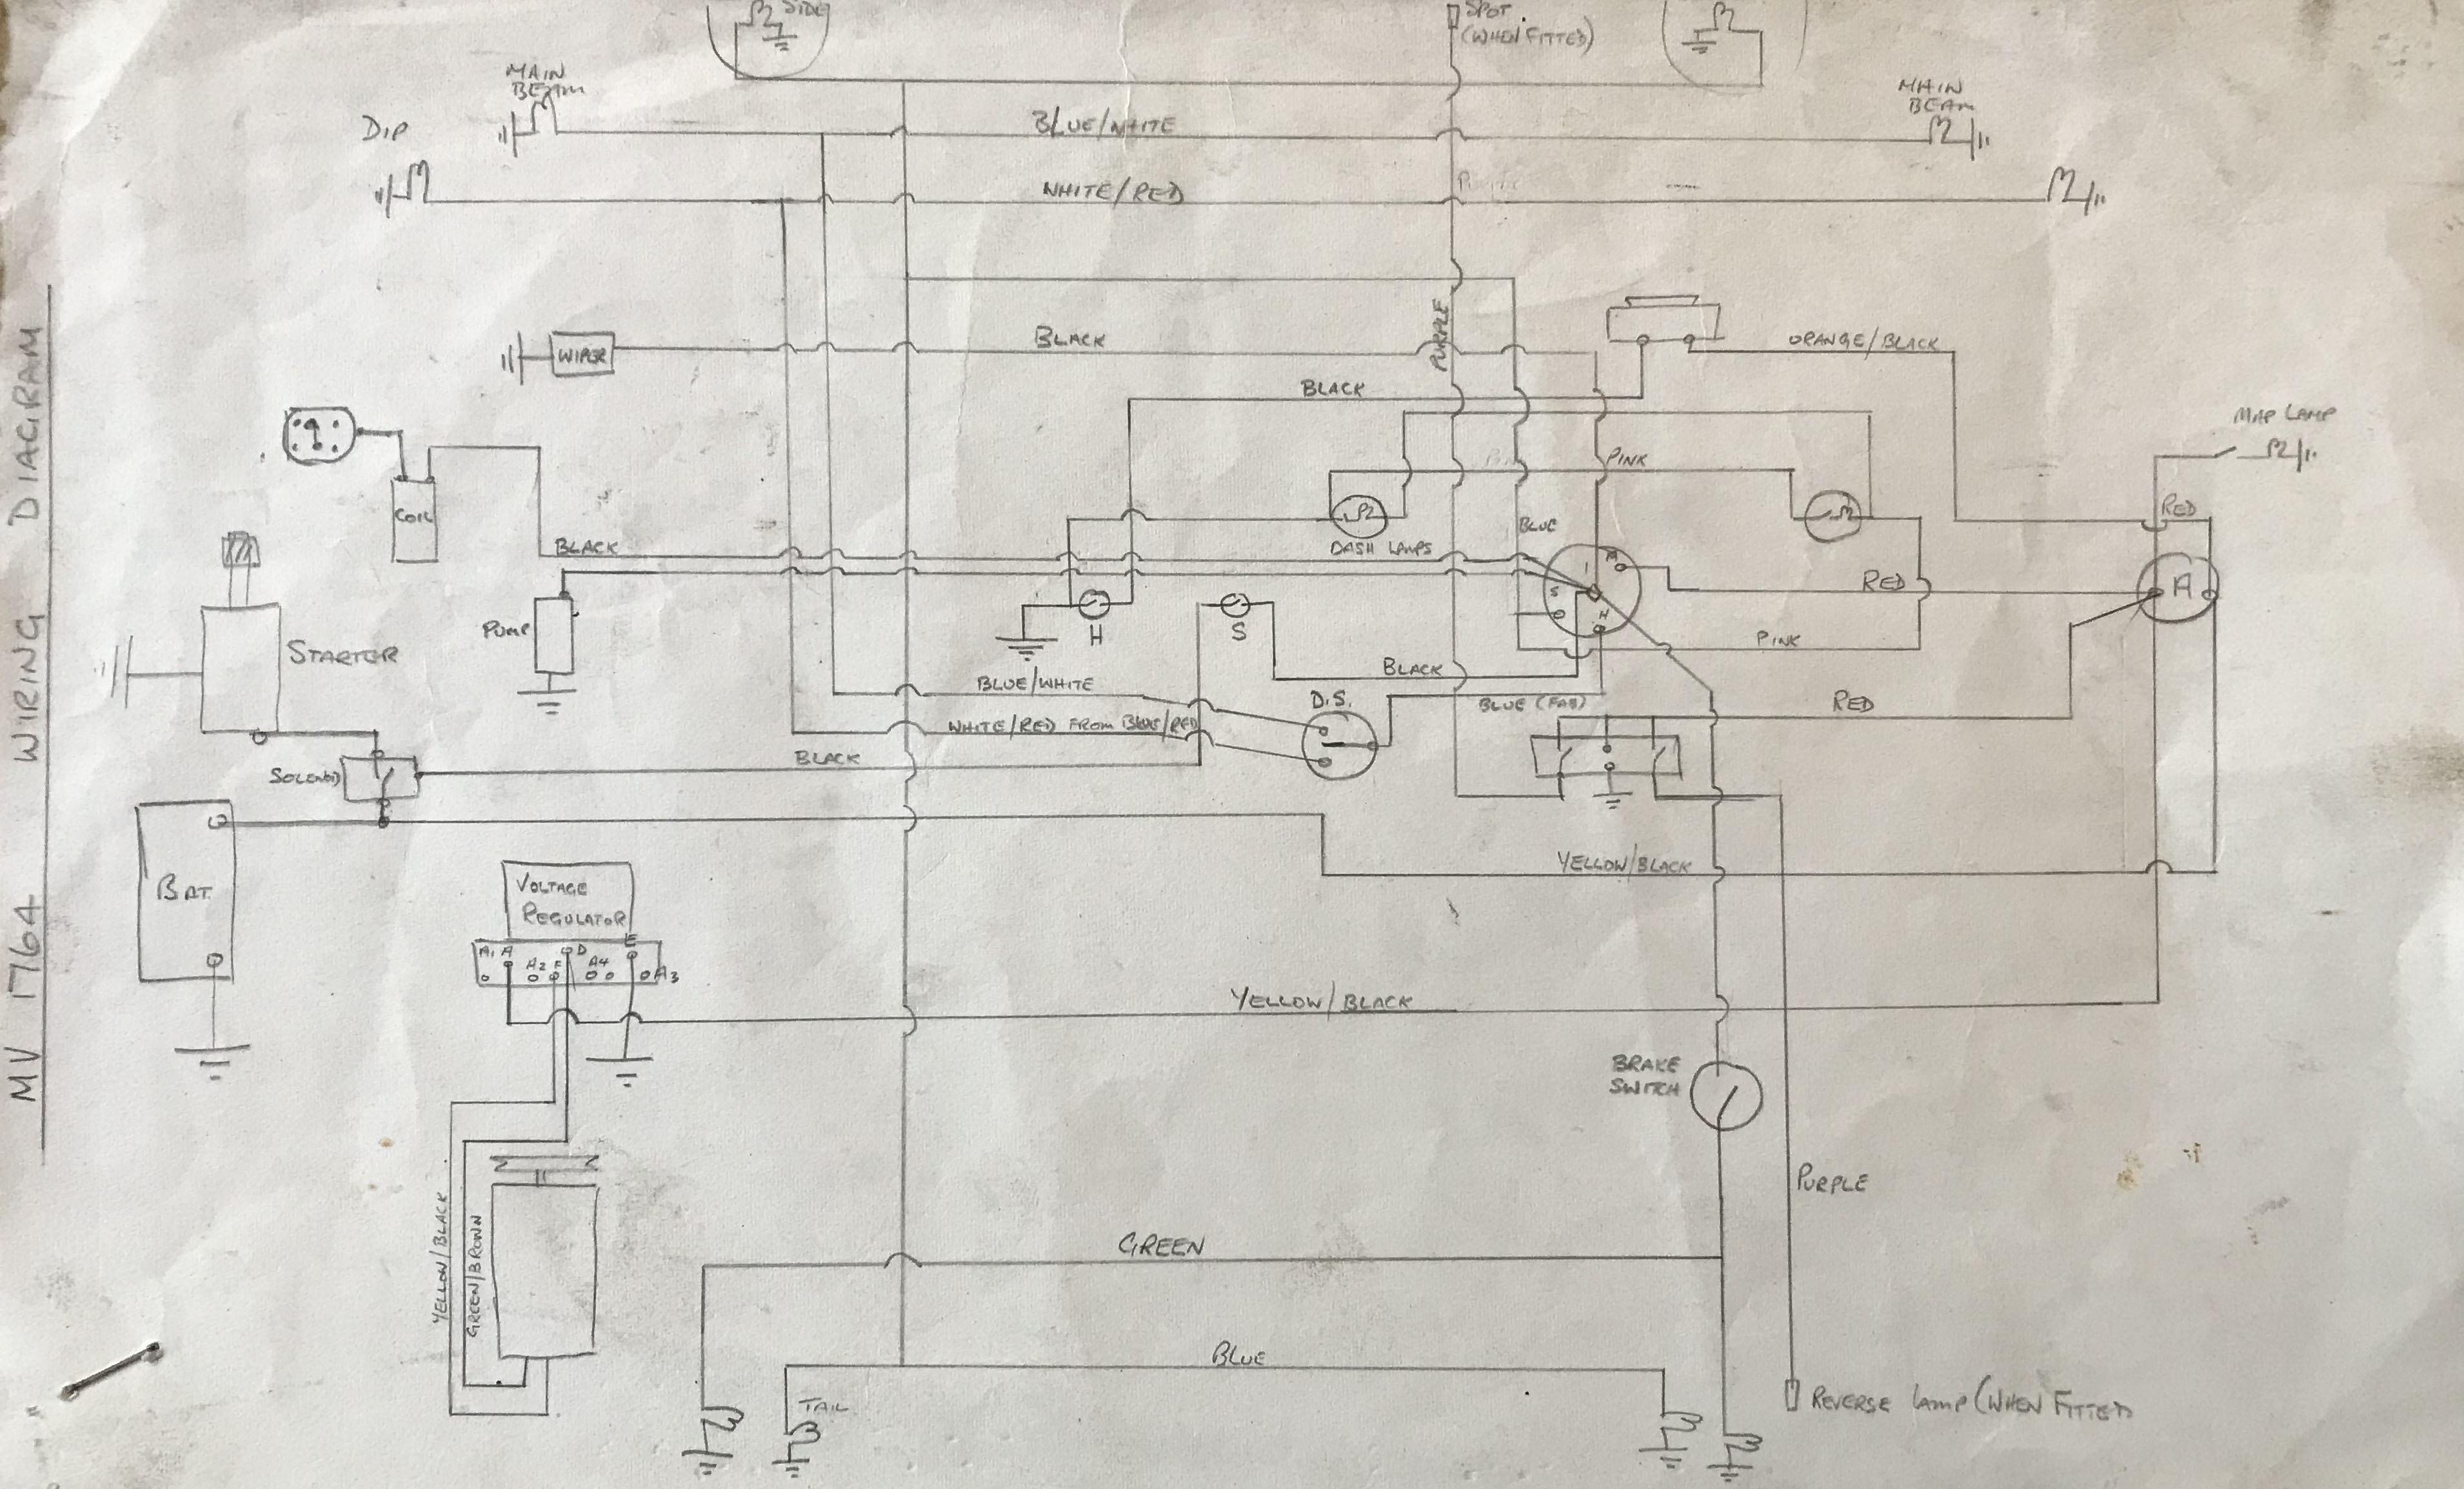 Awesome Lma A Wiring Diagram Composition - Wiring Standart ...